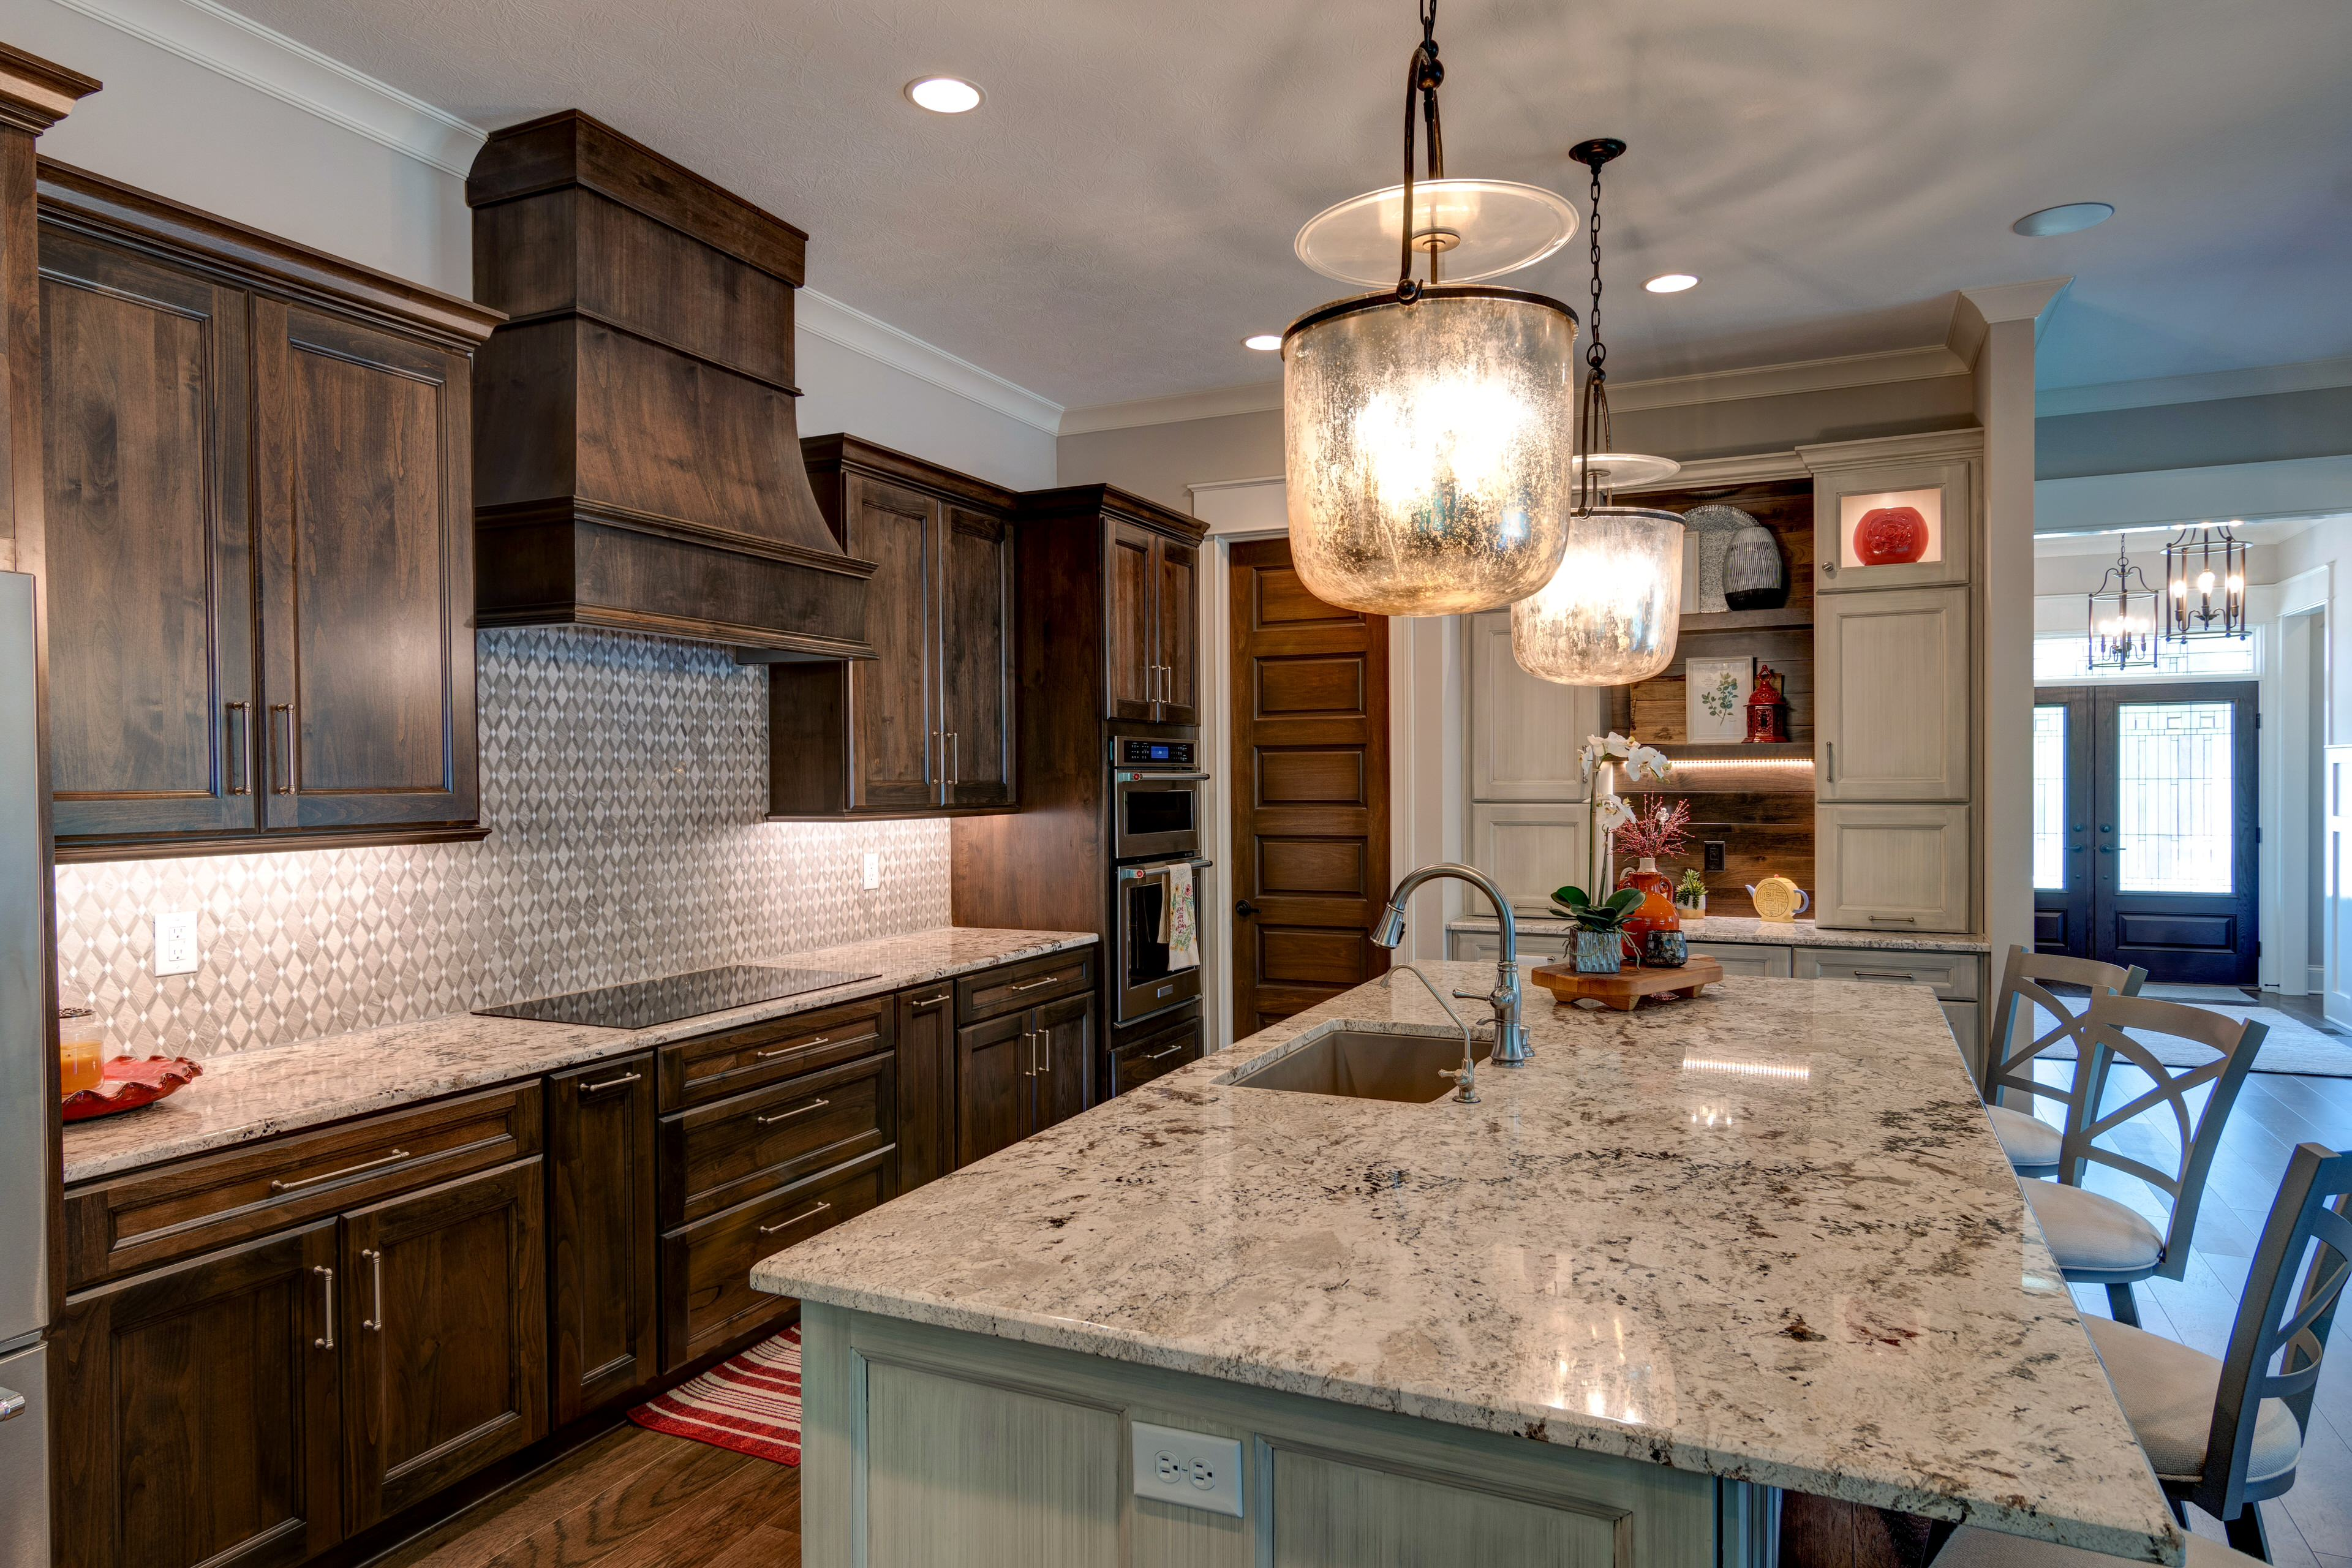 75 Beautiful Kitchen With Brown Cabinets And Granite Countertops Pictures Ideas December 2020 Houzz